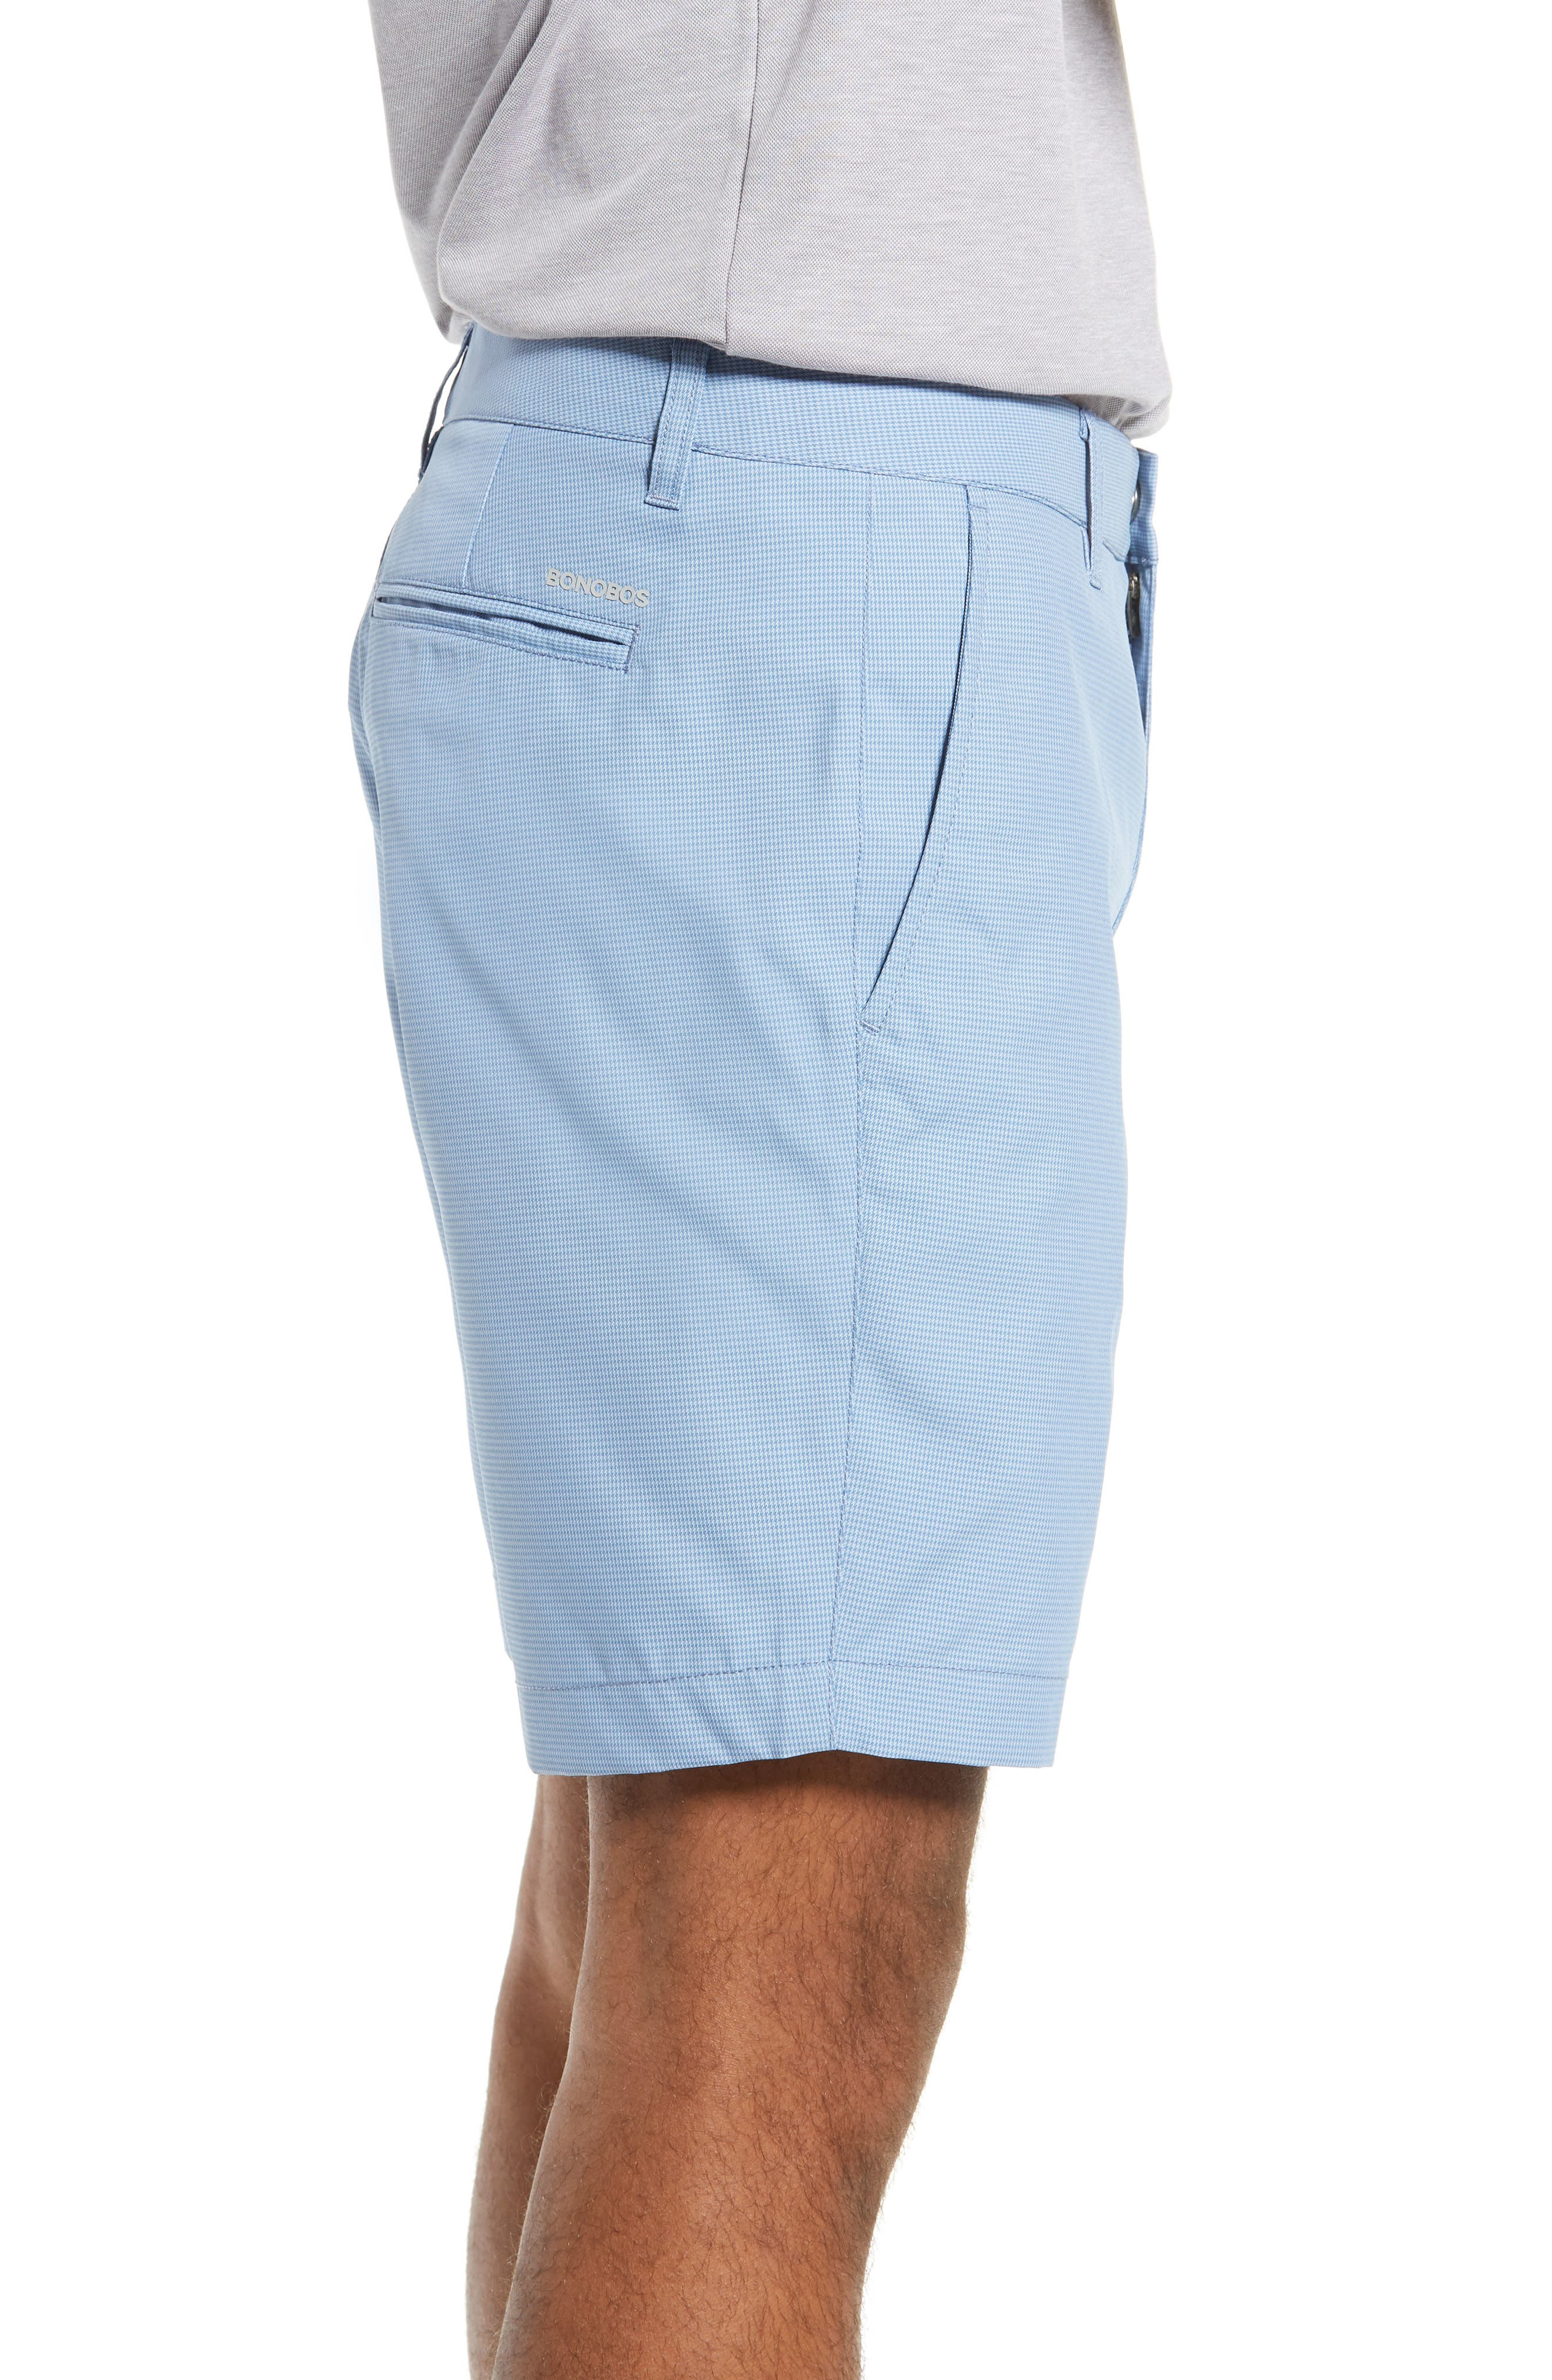 BONOBOS, The Highland Micro Houndstooth Golf Shorts, Alternate thumbnail 3, color, BLUE MINICHECK C3